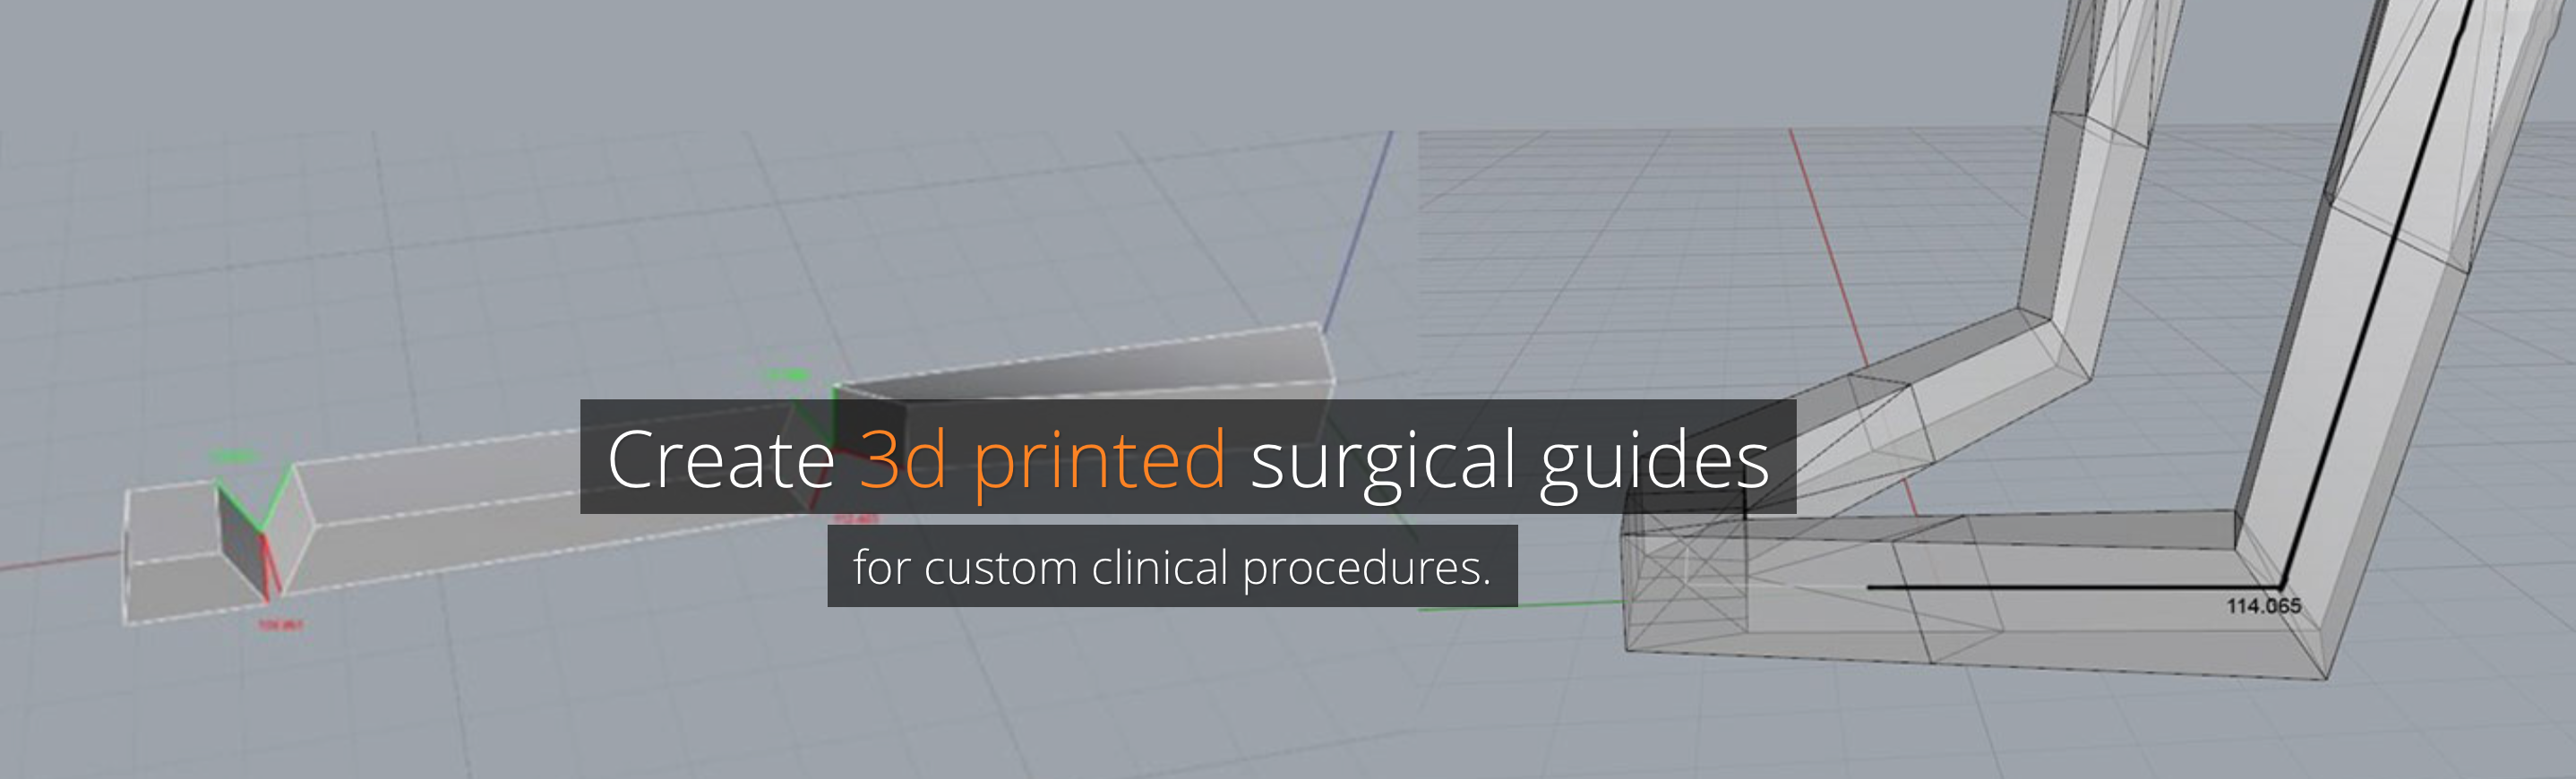 3D Printed Surgical Guide